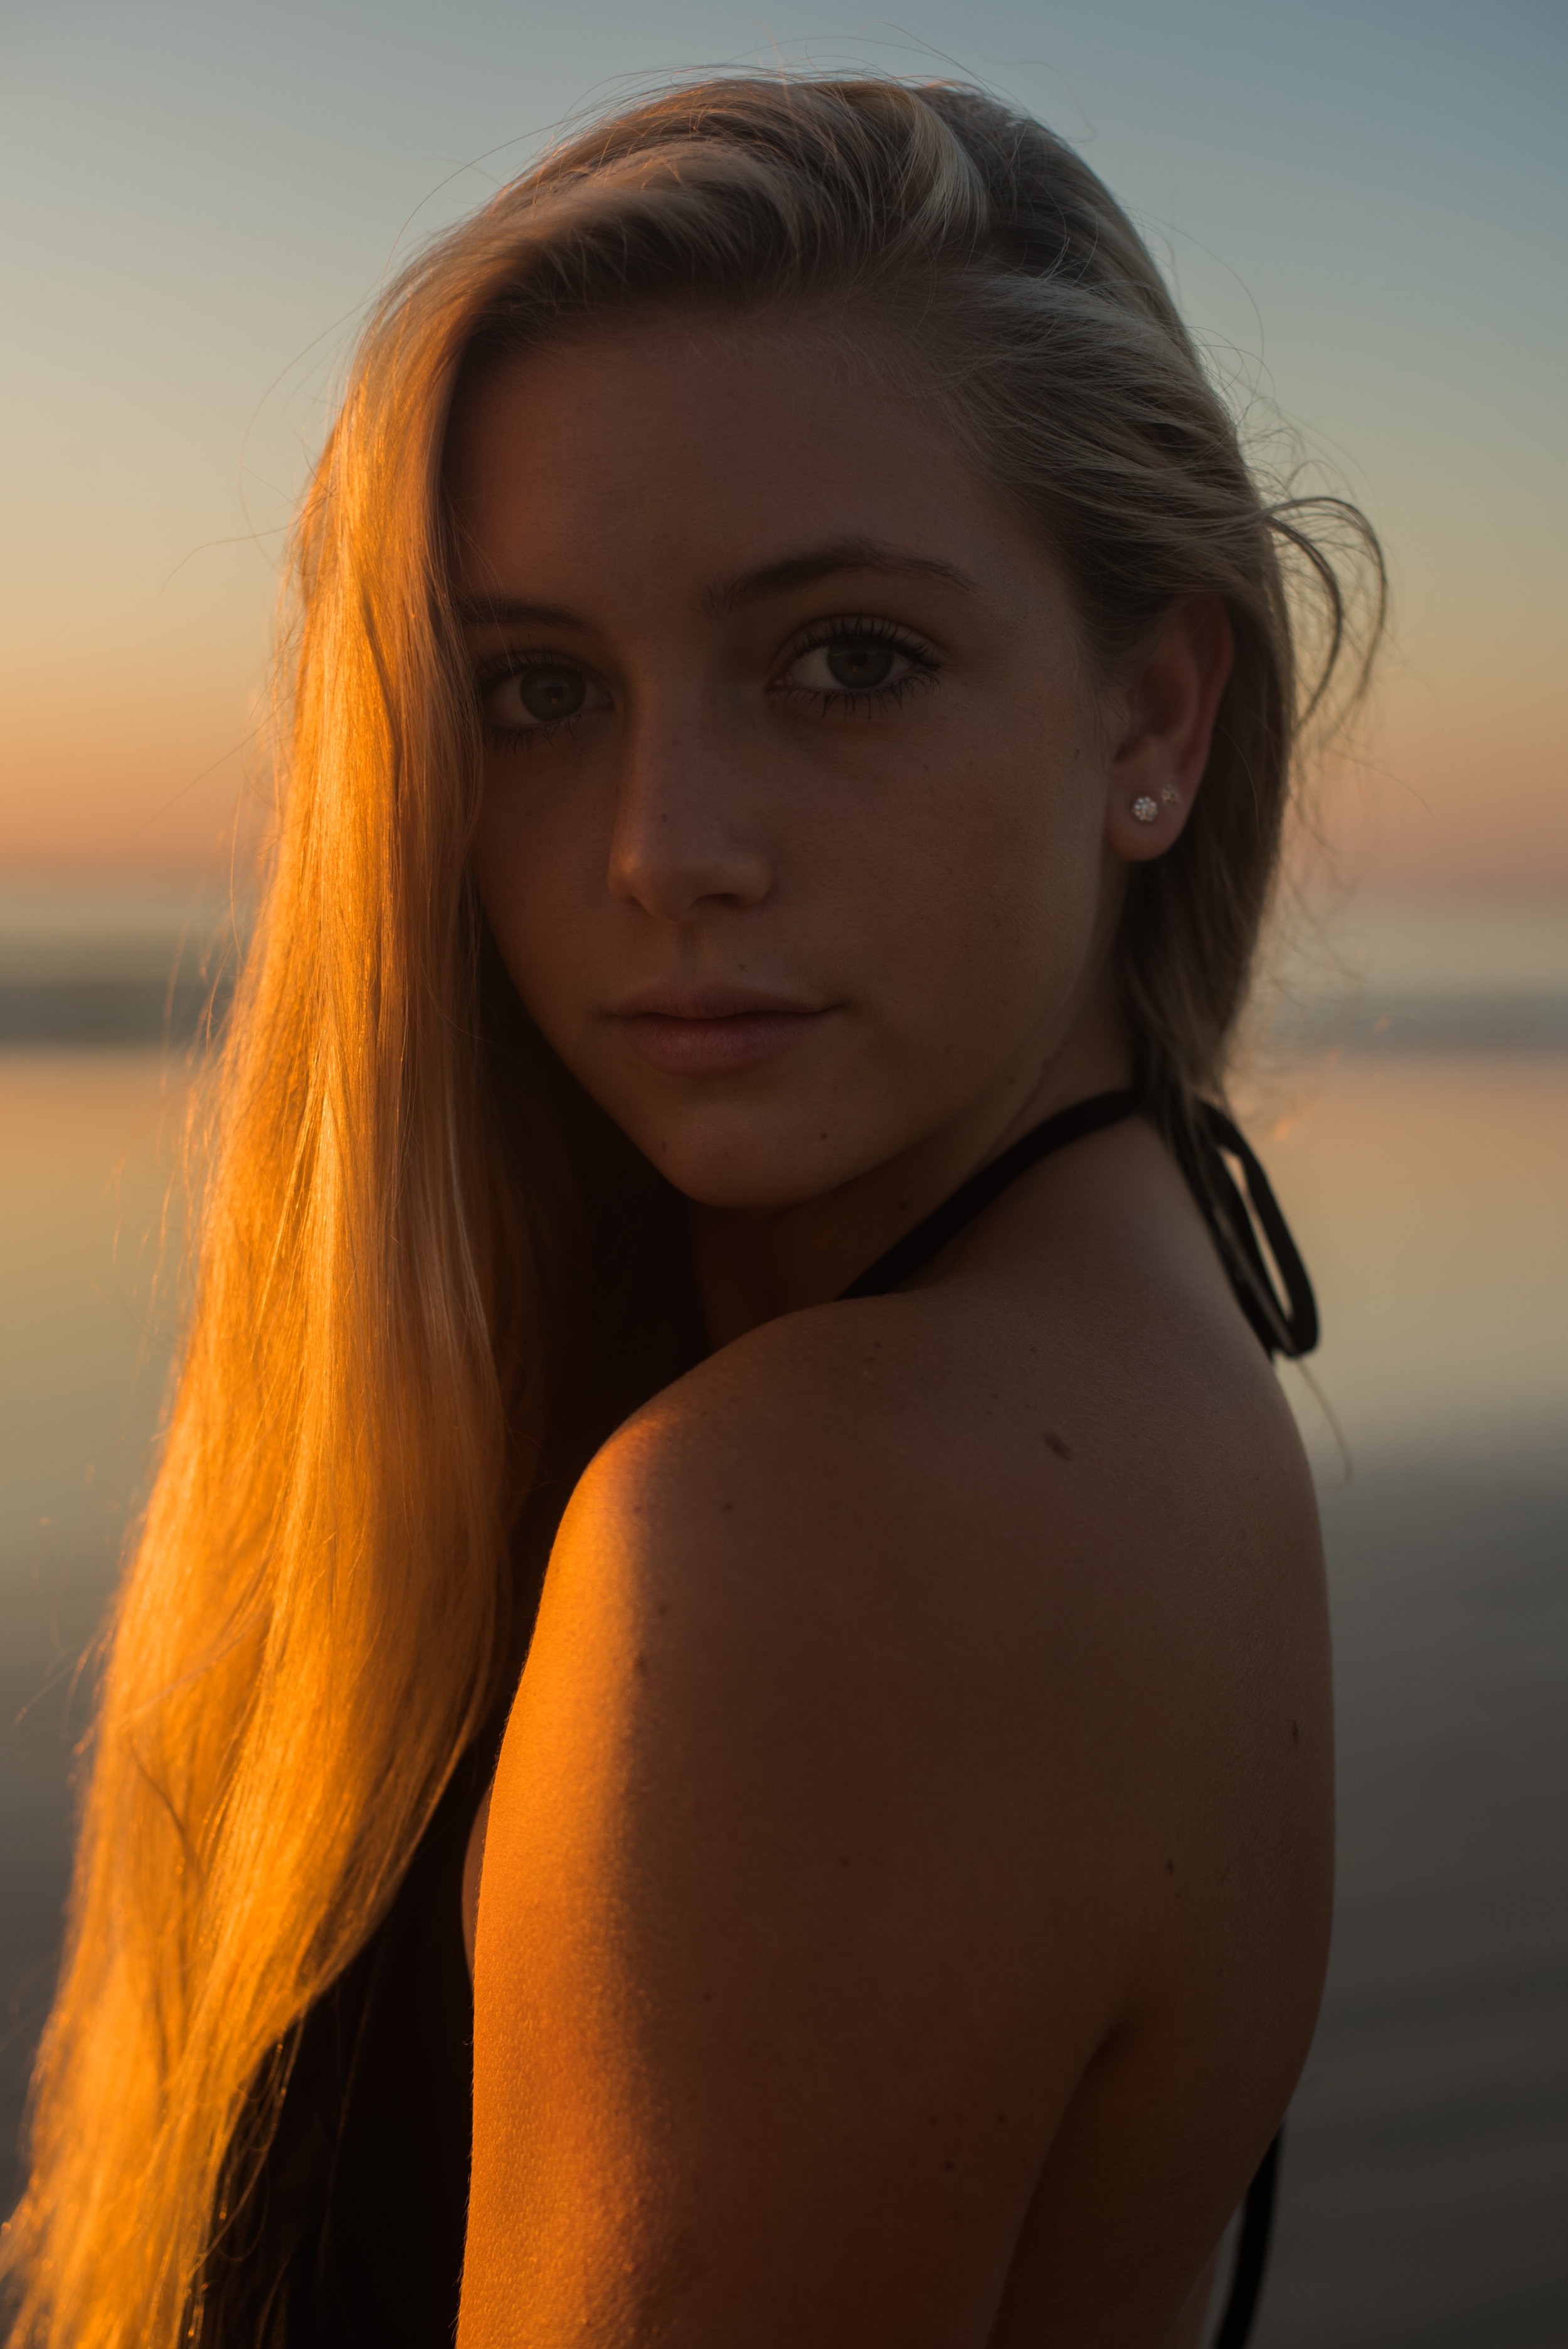 maddie-cocoa-beach-senior-photo-1-15.jpg